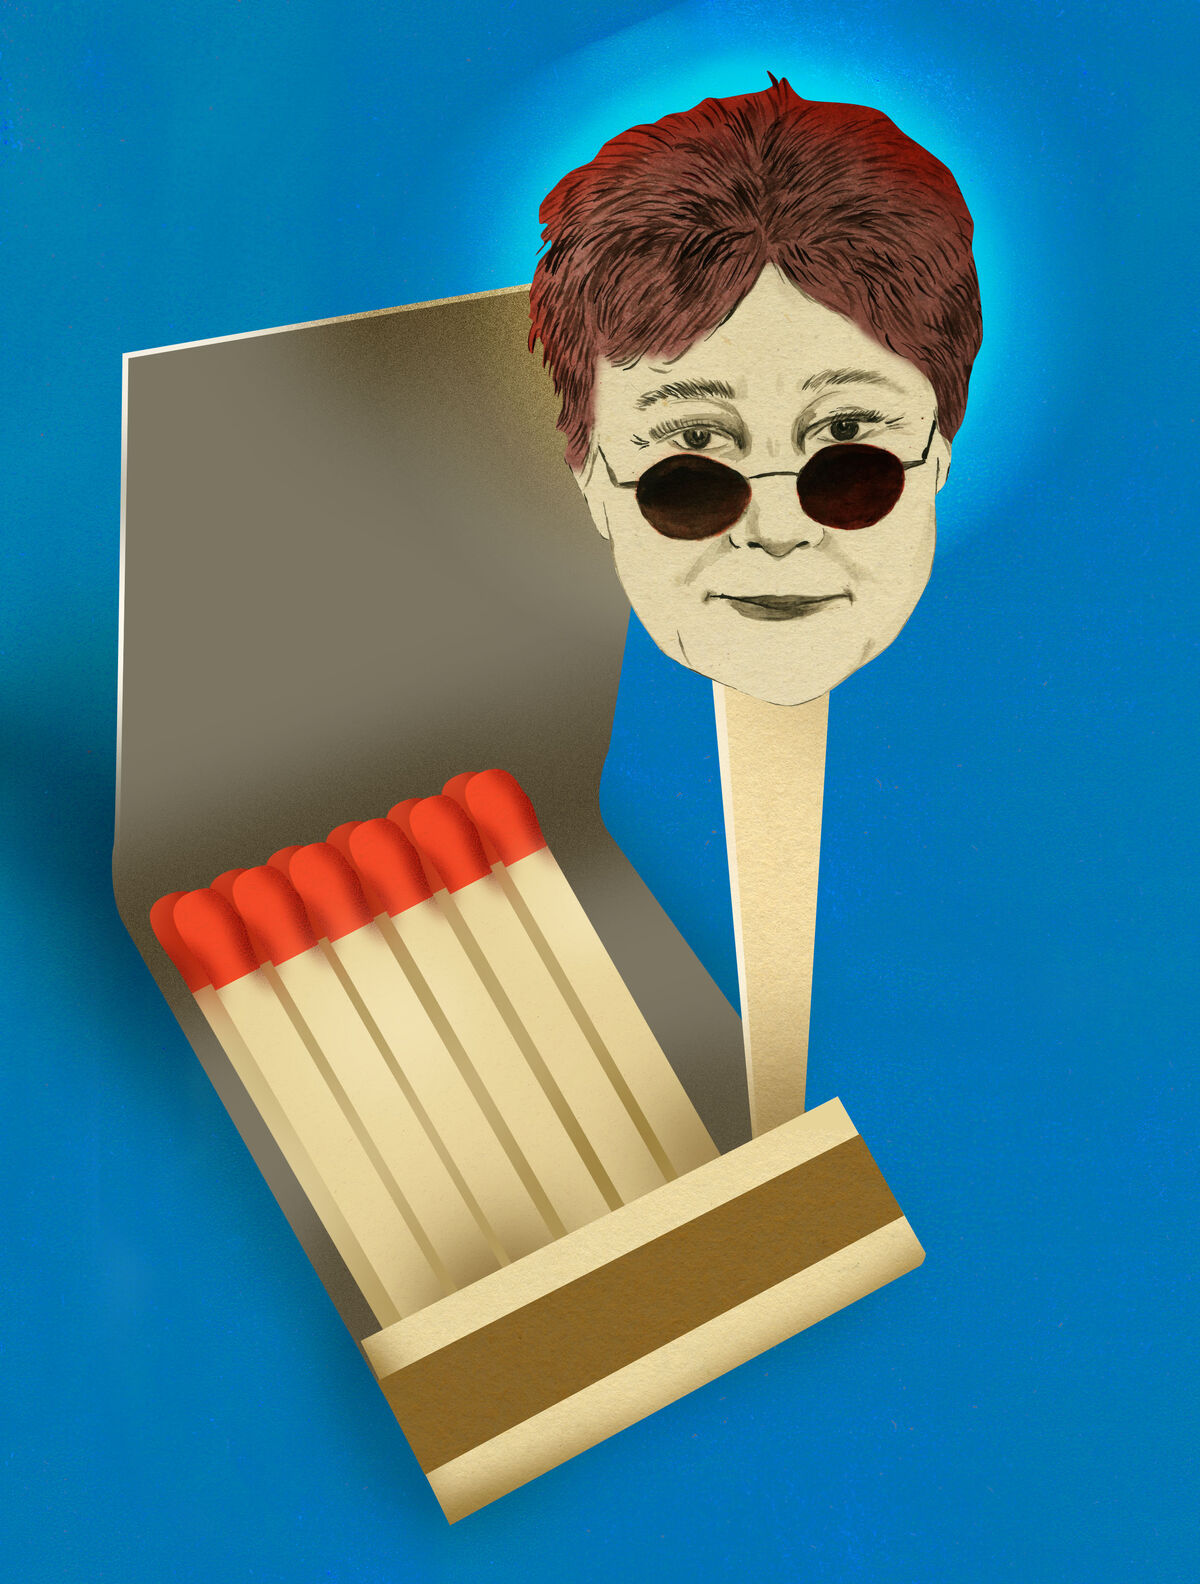 Illustration of Yoko Ono, excerpted from Ellen Weinstein's Recipes for Good Luck, 2018. Published by Chronicle Books.